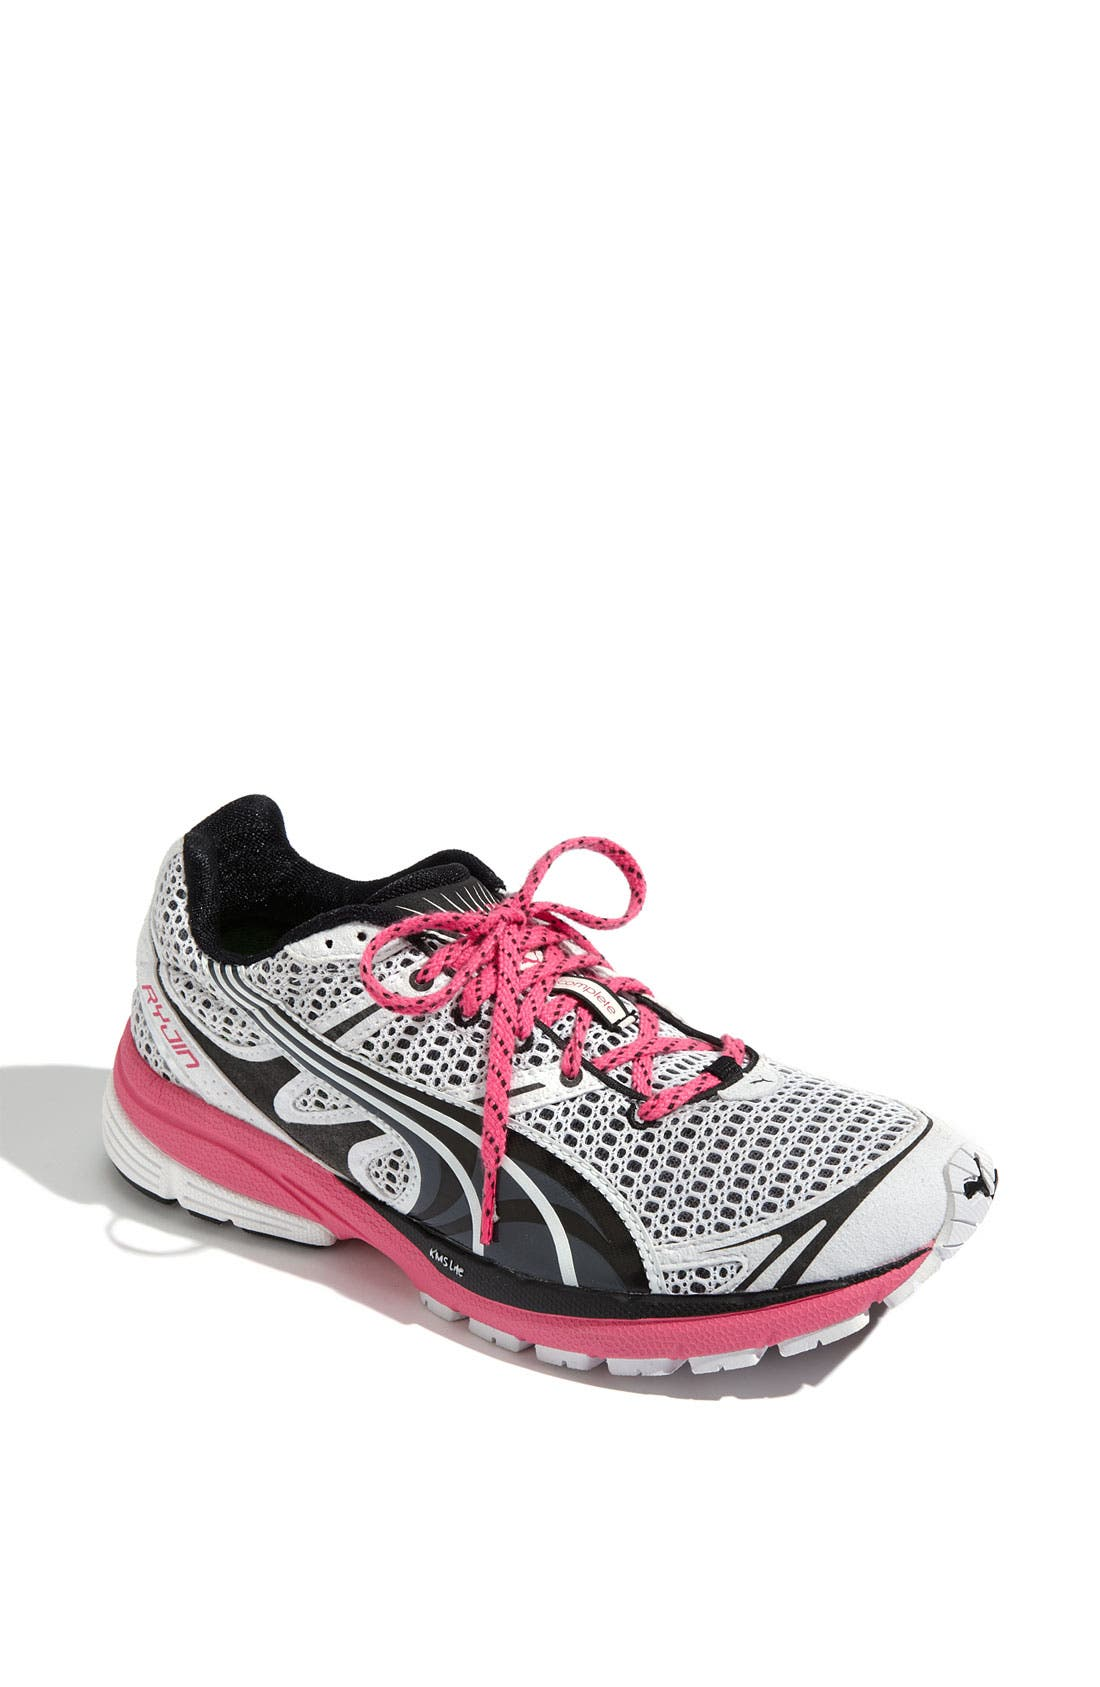 Alternate Image 1 Selected - PUMA 'Complete SLX Ryjin' Running Shoe (Women)